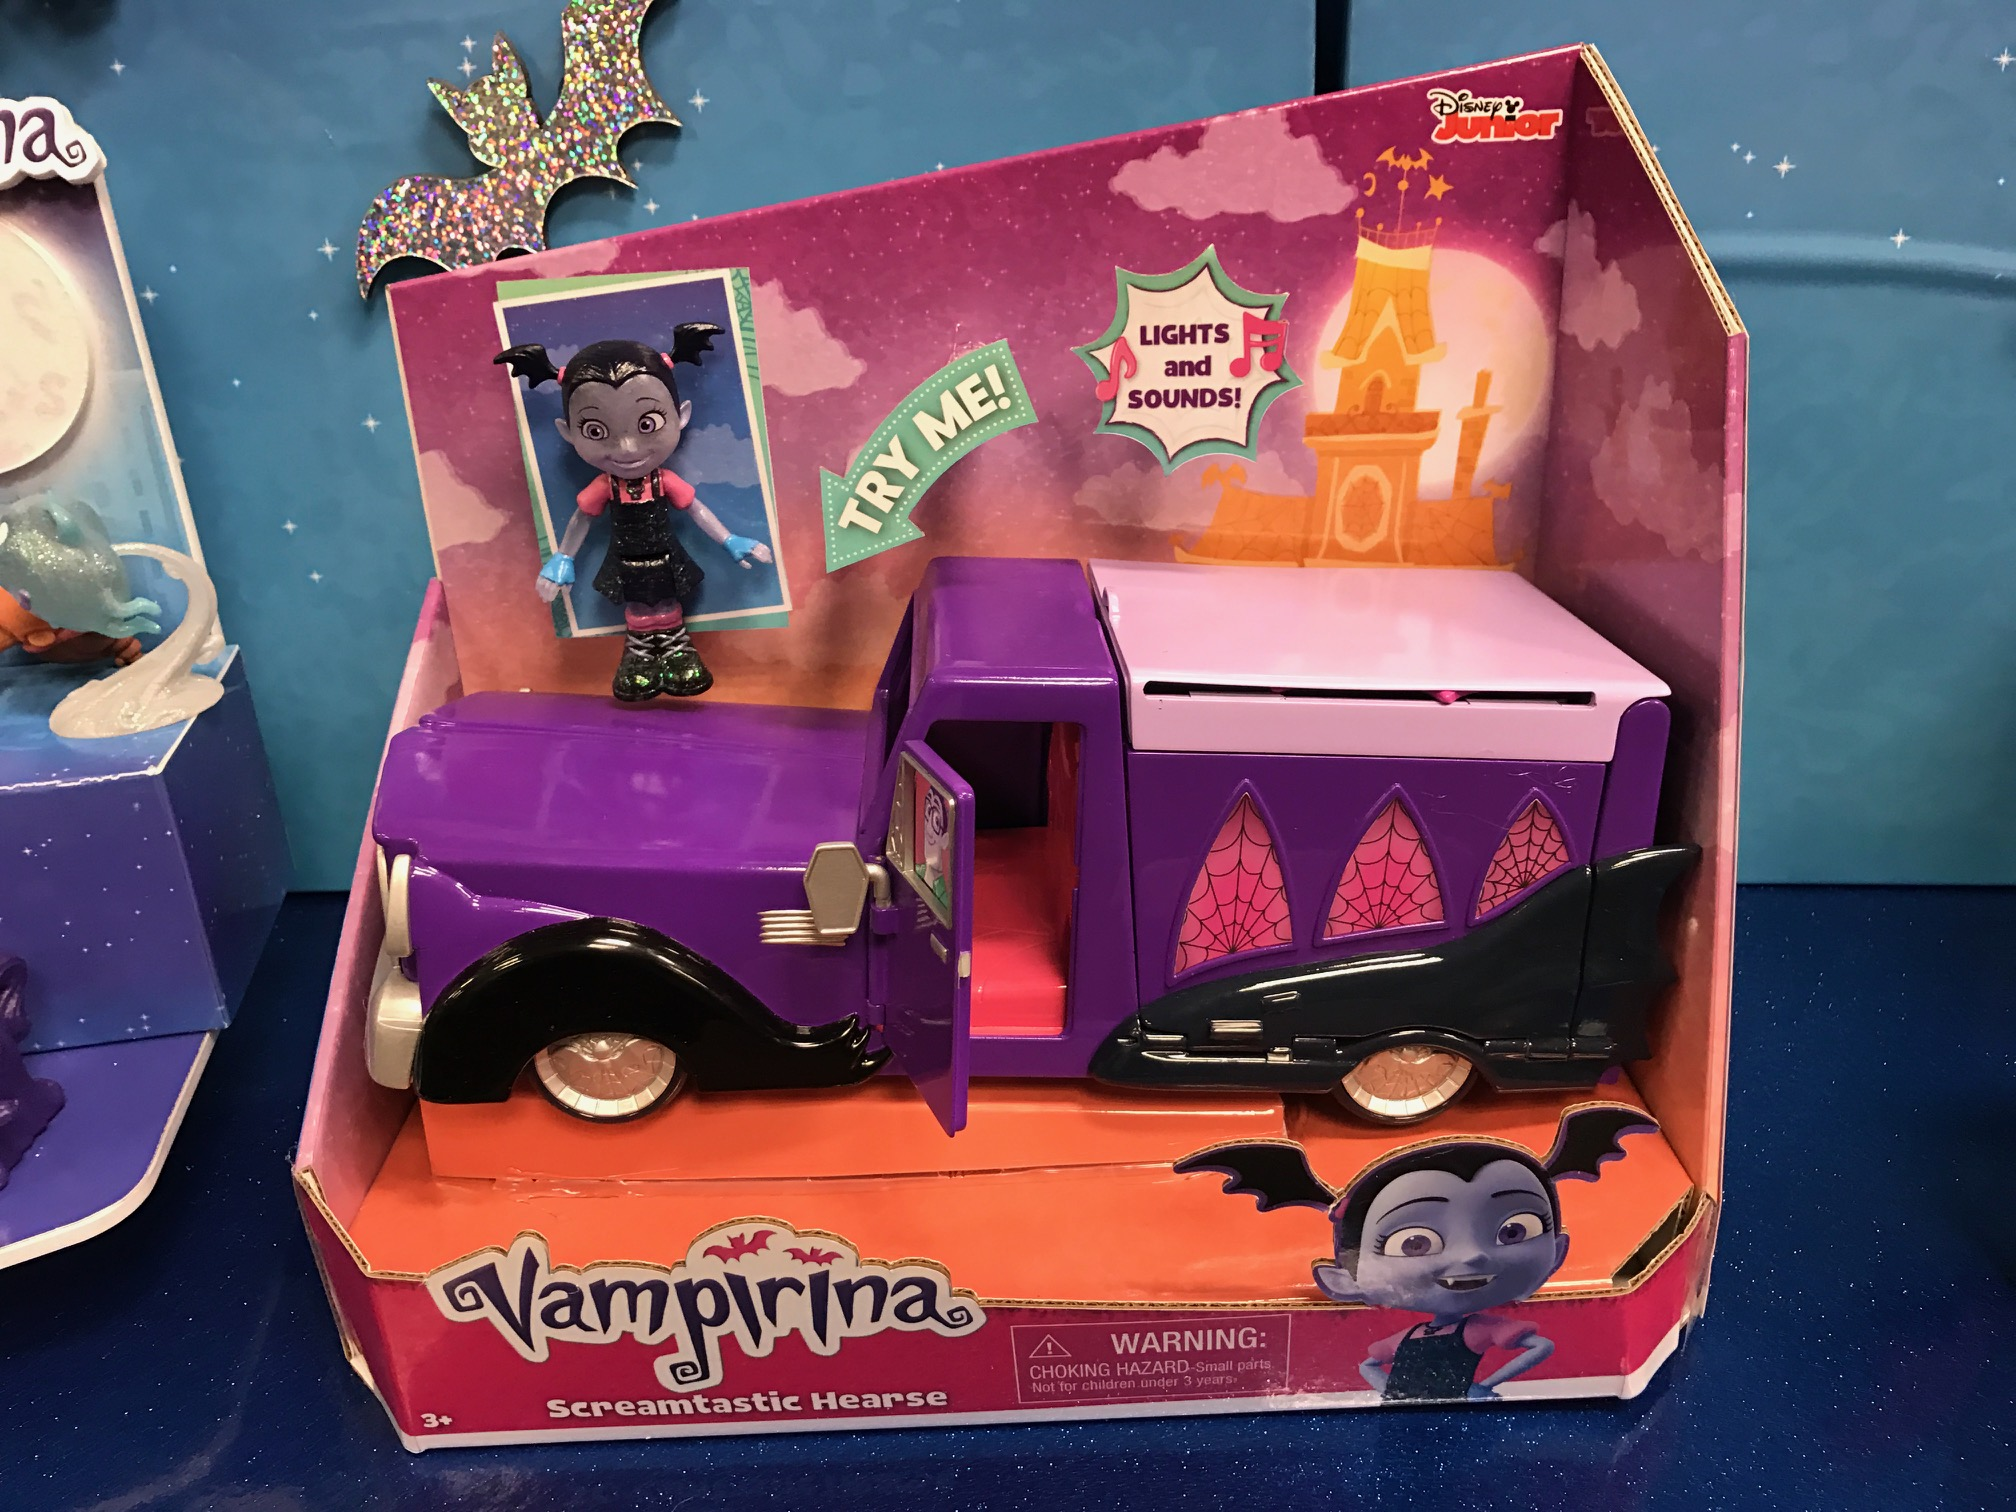 new vampirina screamtastic hearse toy